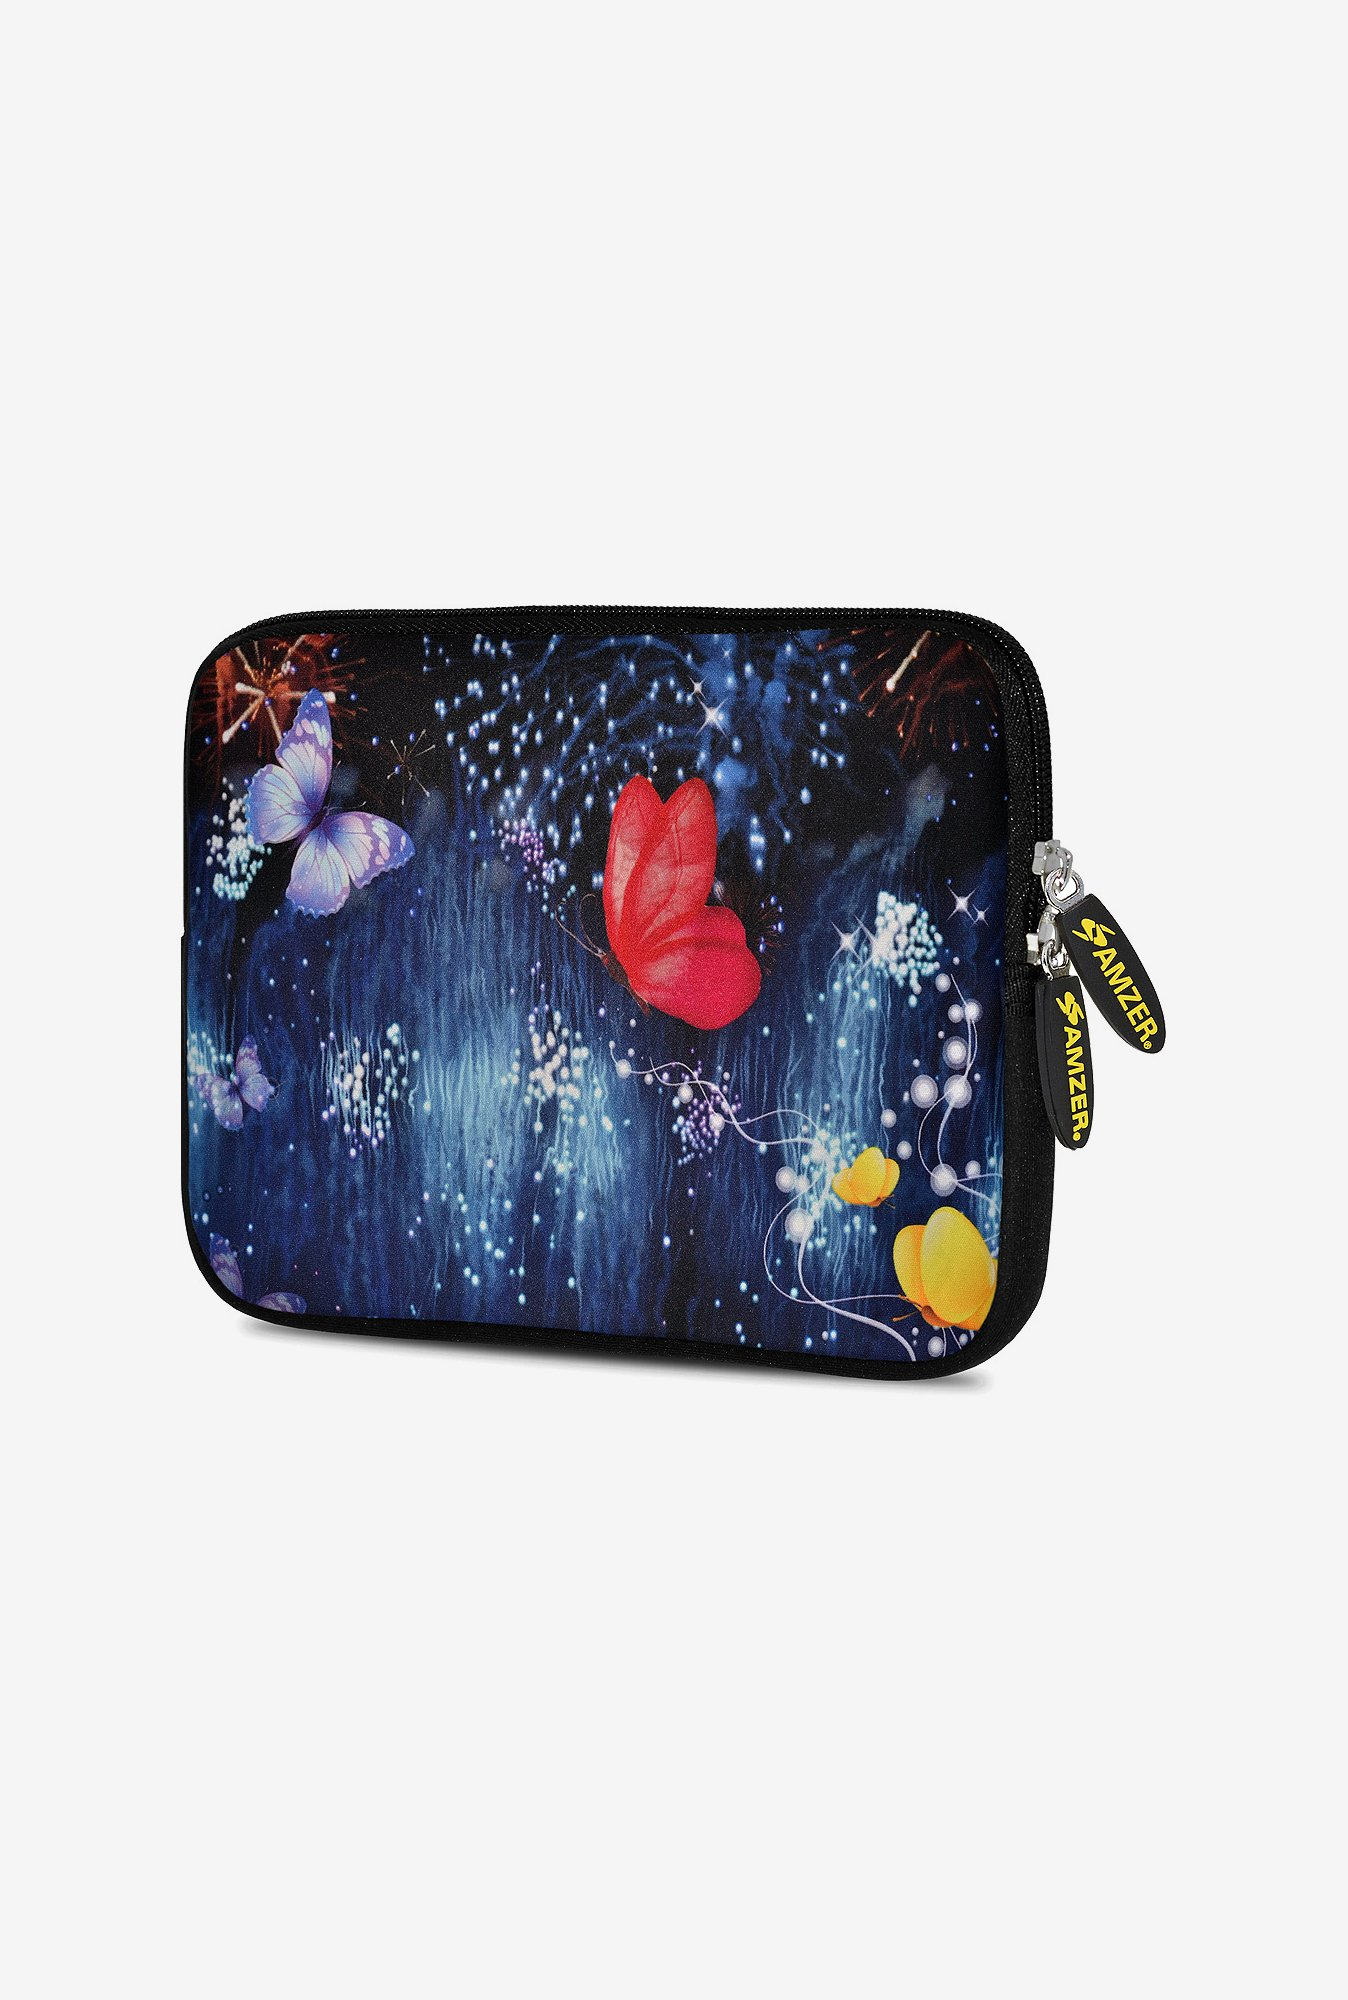 Amzer 7.75 Inch Neoprene Sleeve - Butterfly Dream